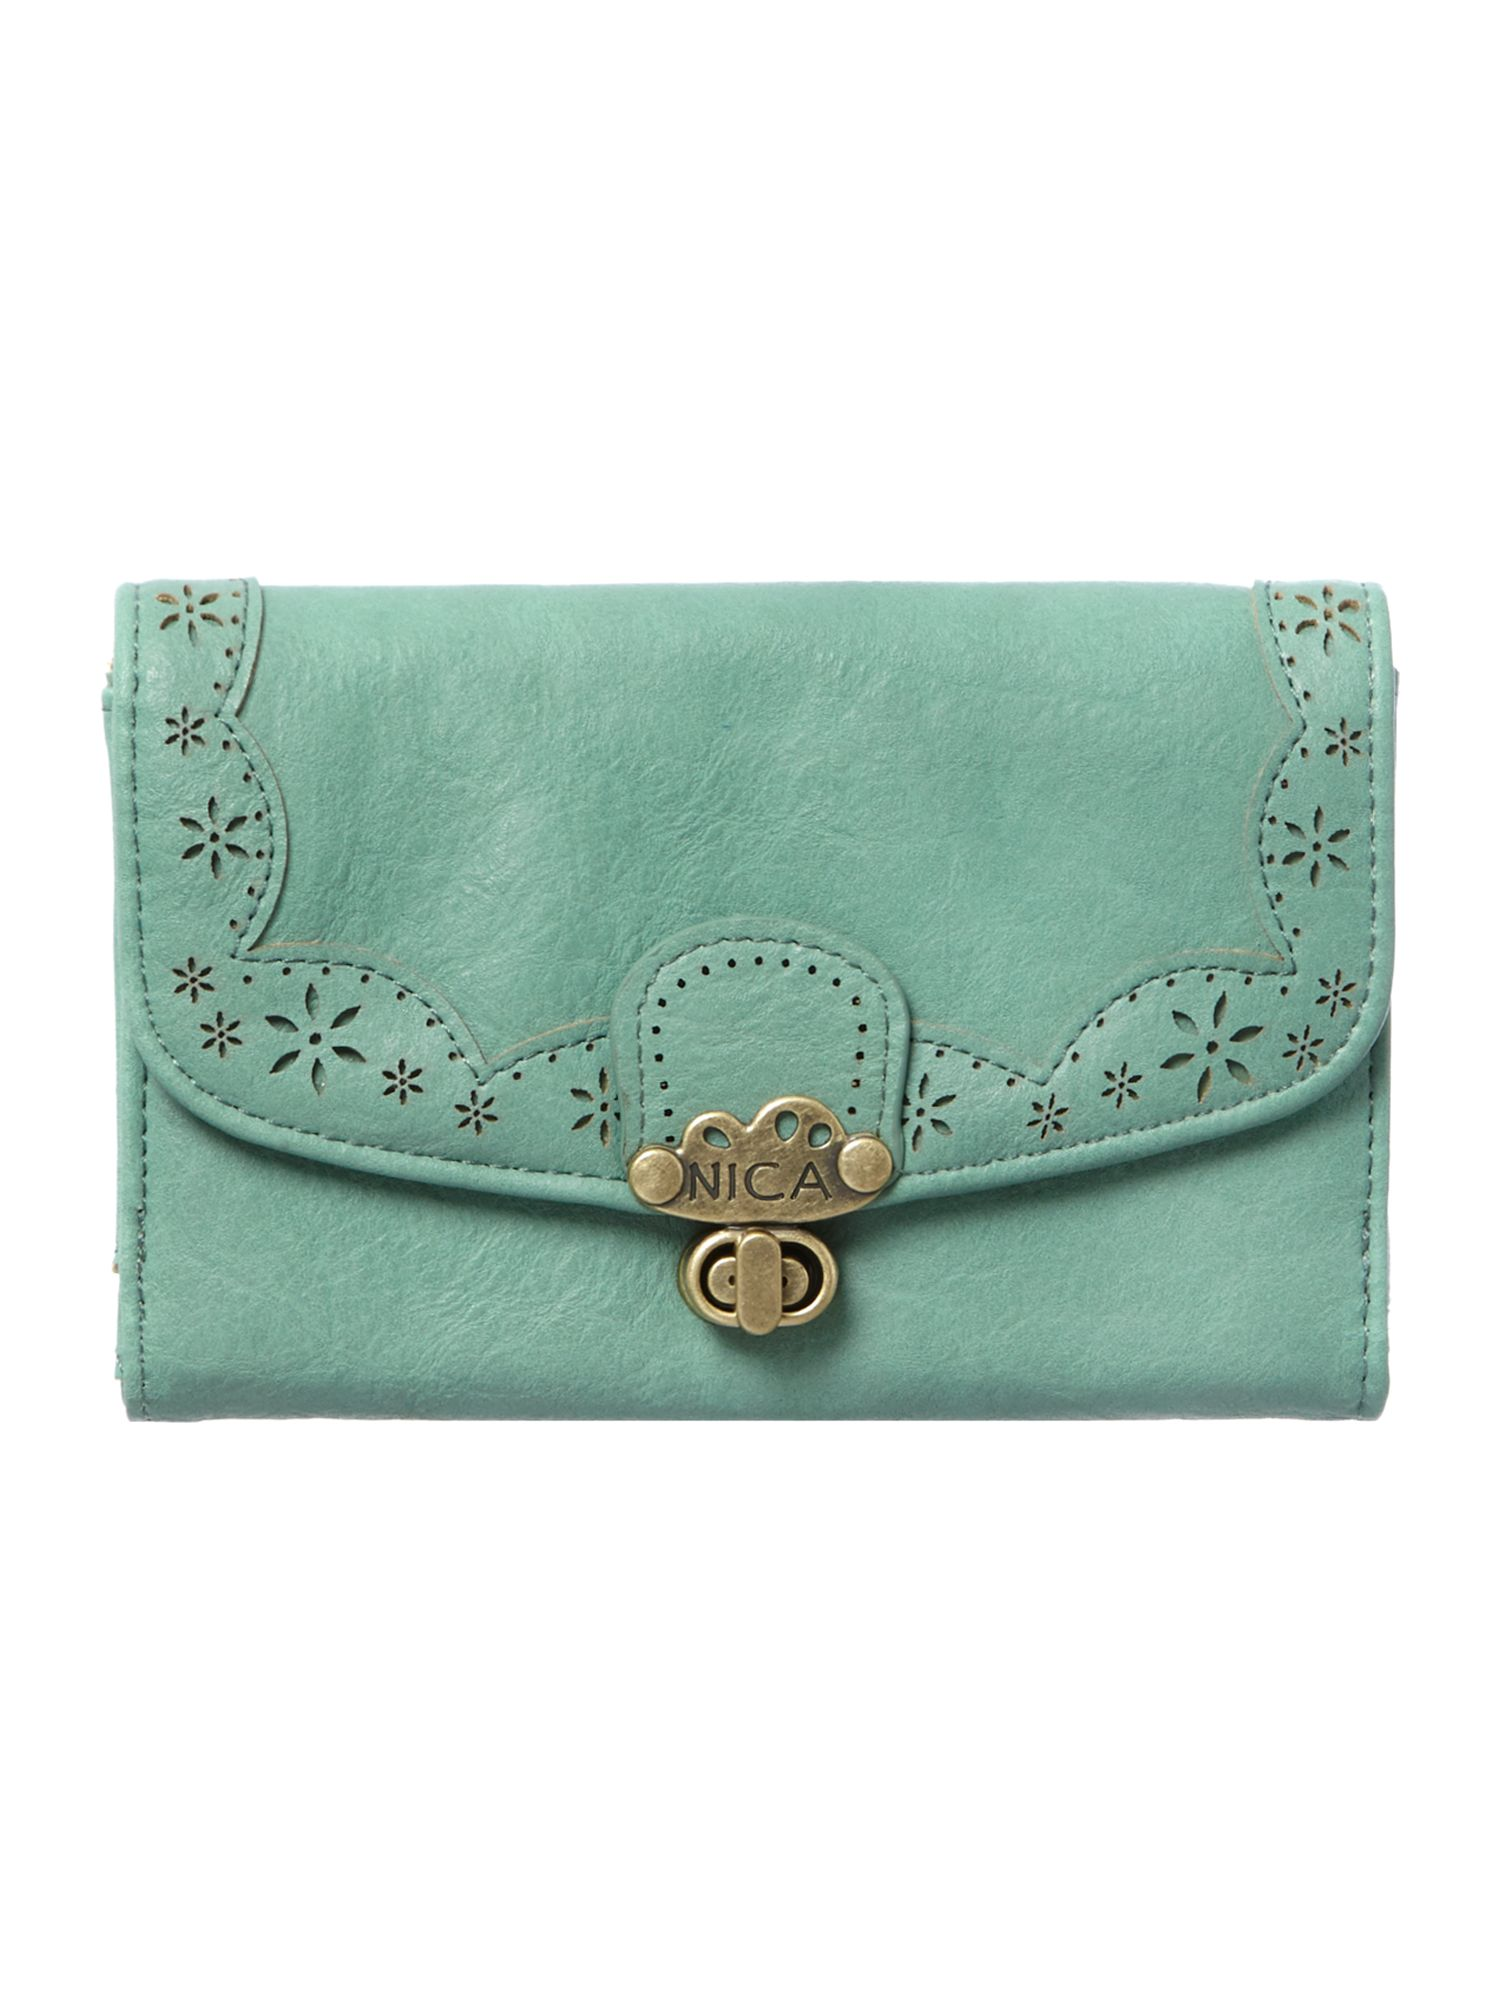 Alicia green medium flap over purse